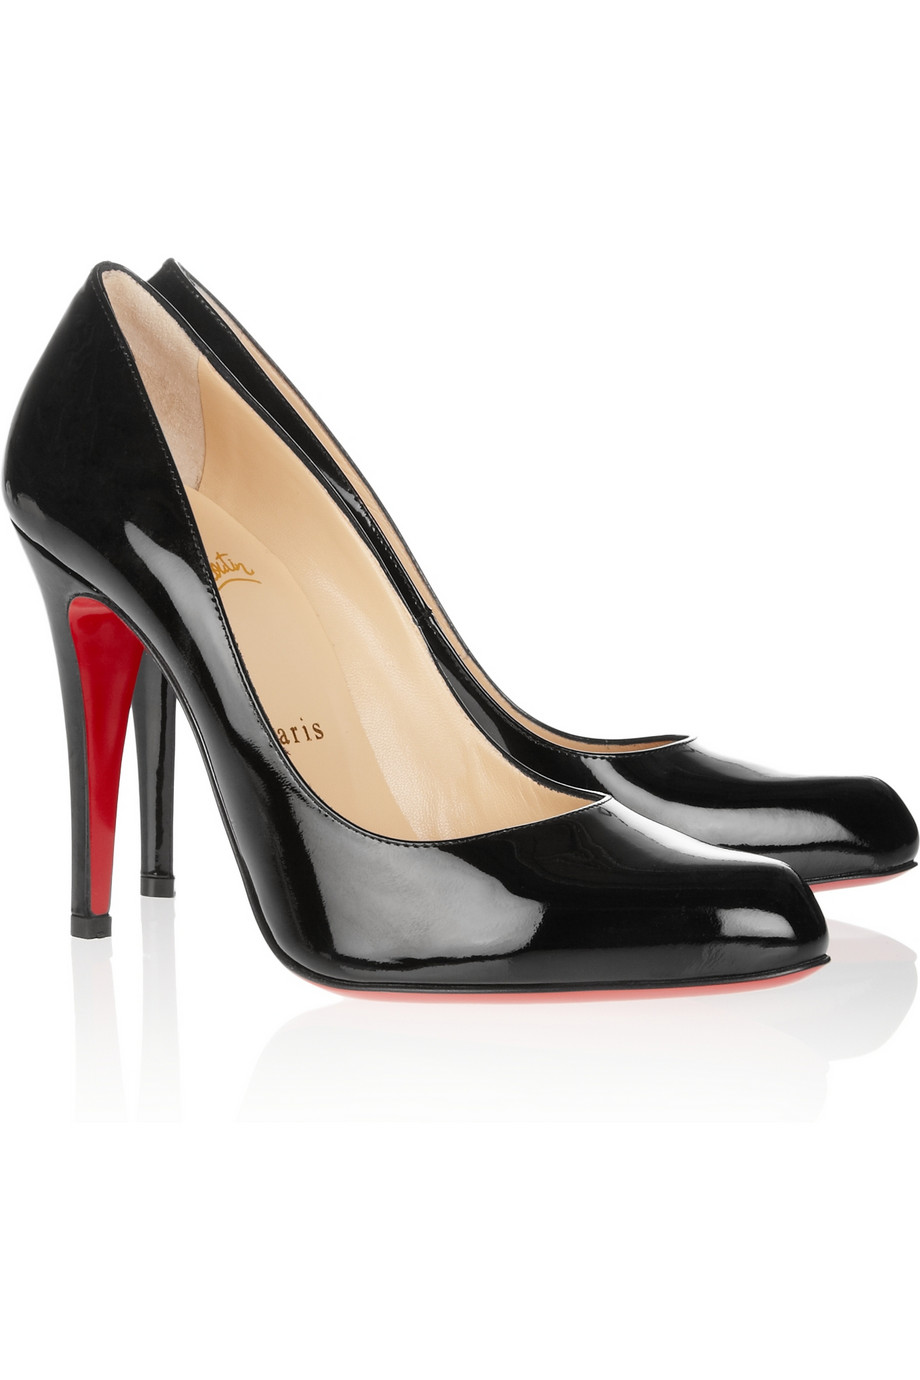 9649fee584d7 What is the Colour Code of Christian Louboutin Red Soles